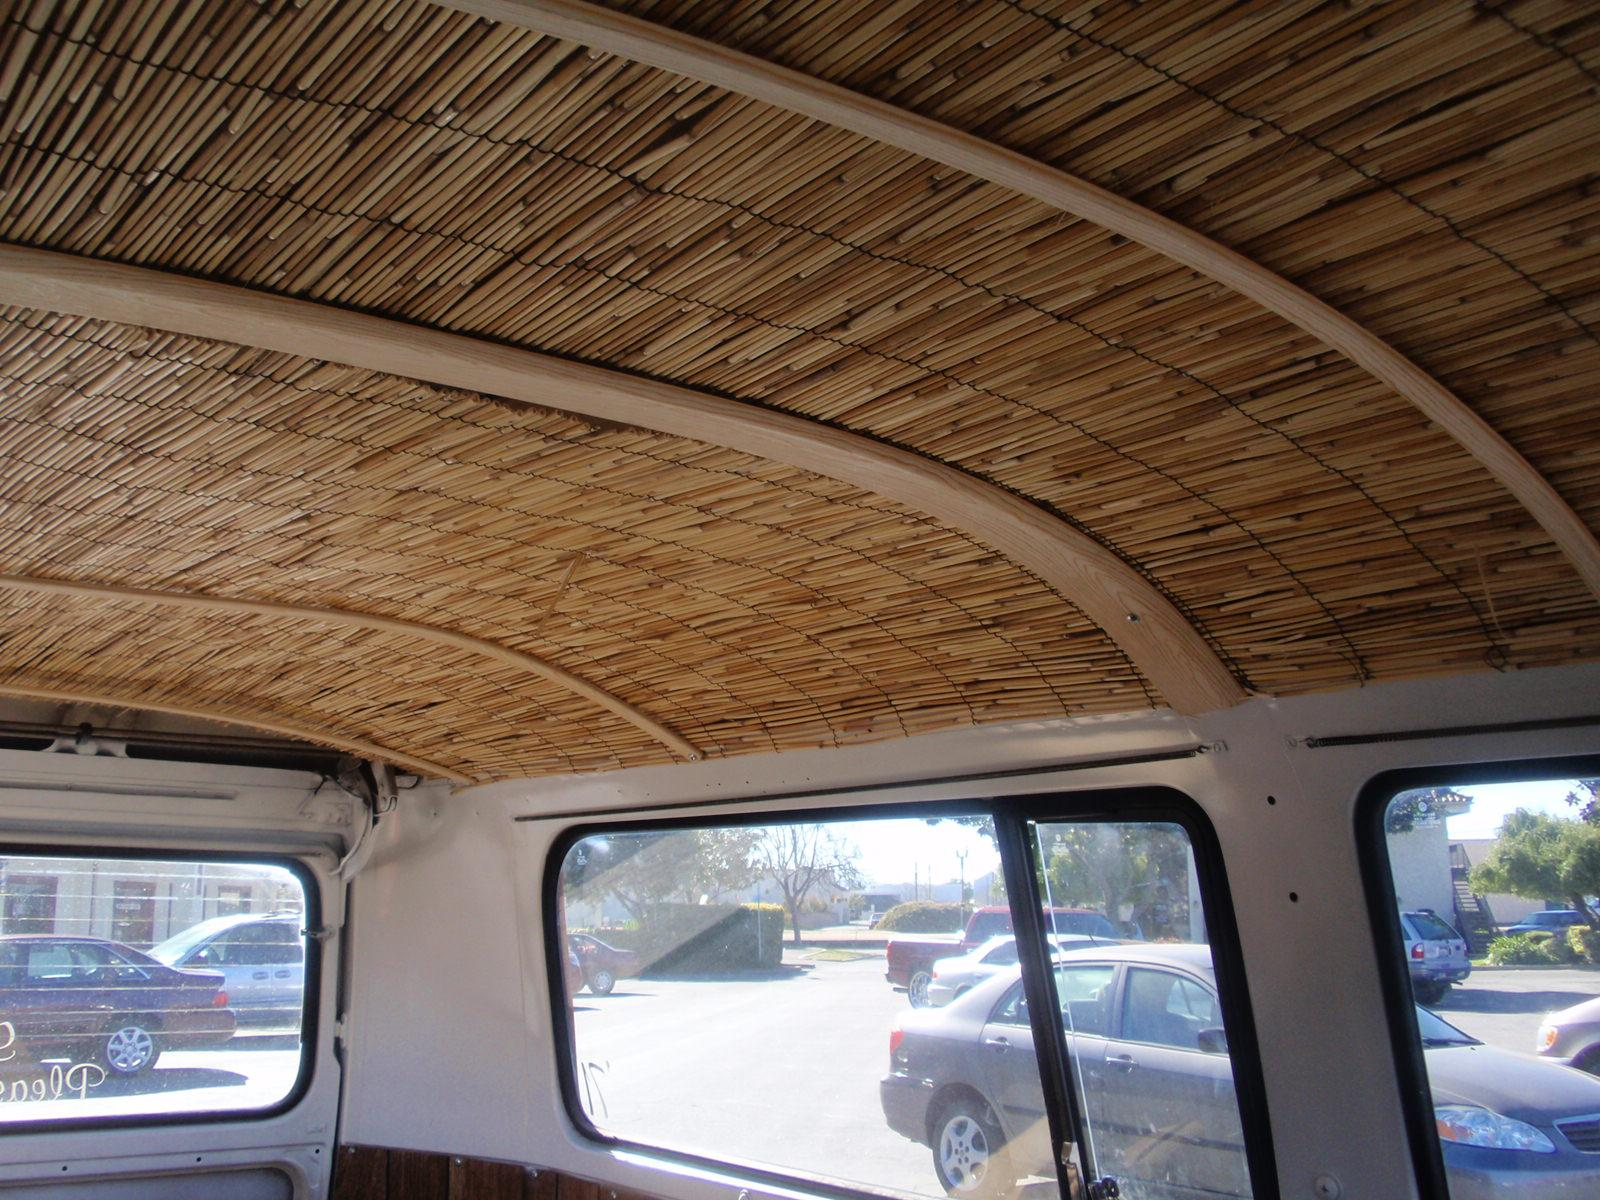 Thesamba Com Bay Window Bus View Topic Bamboo Diy